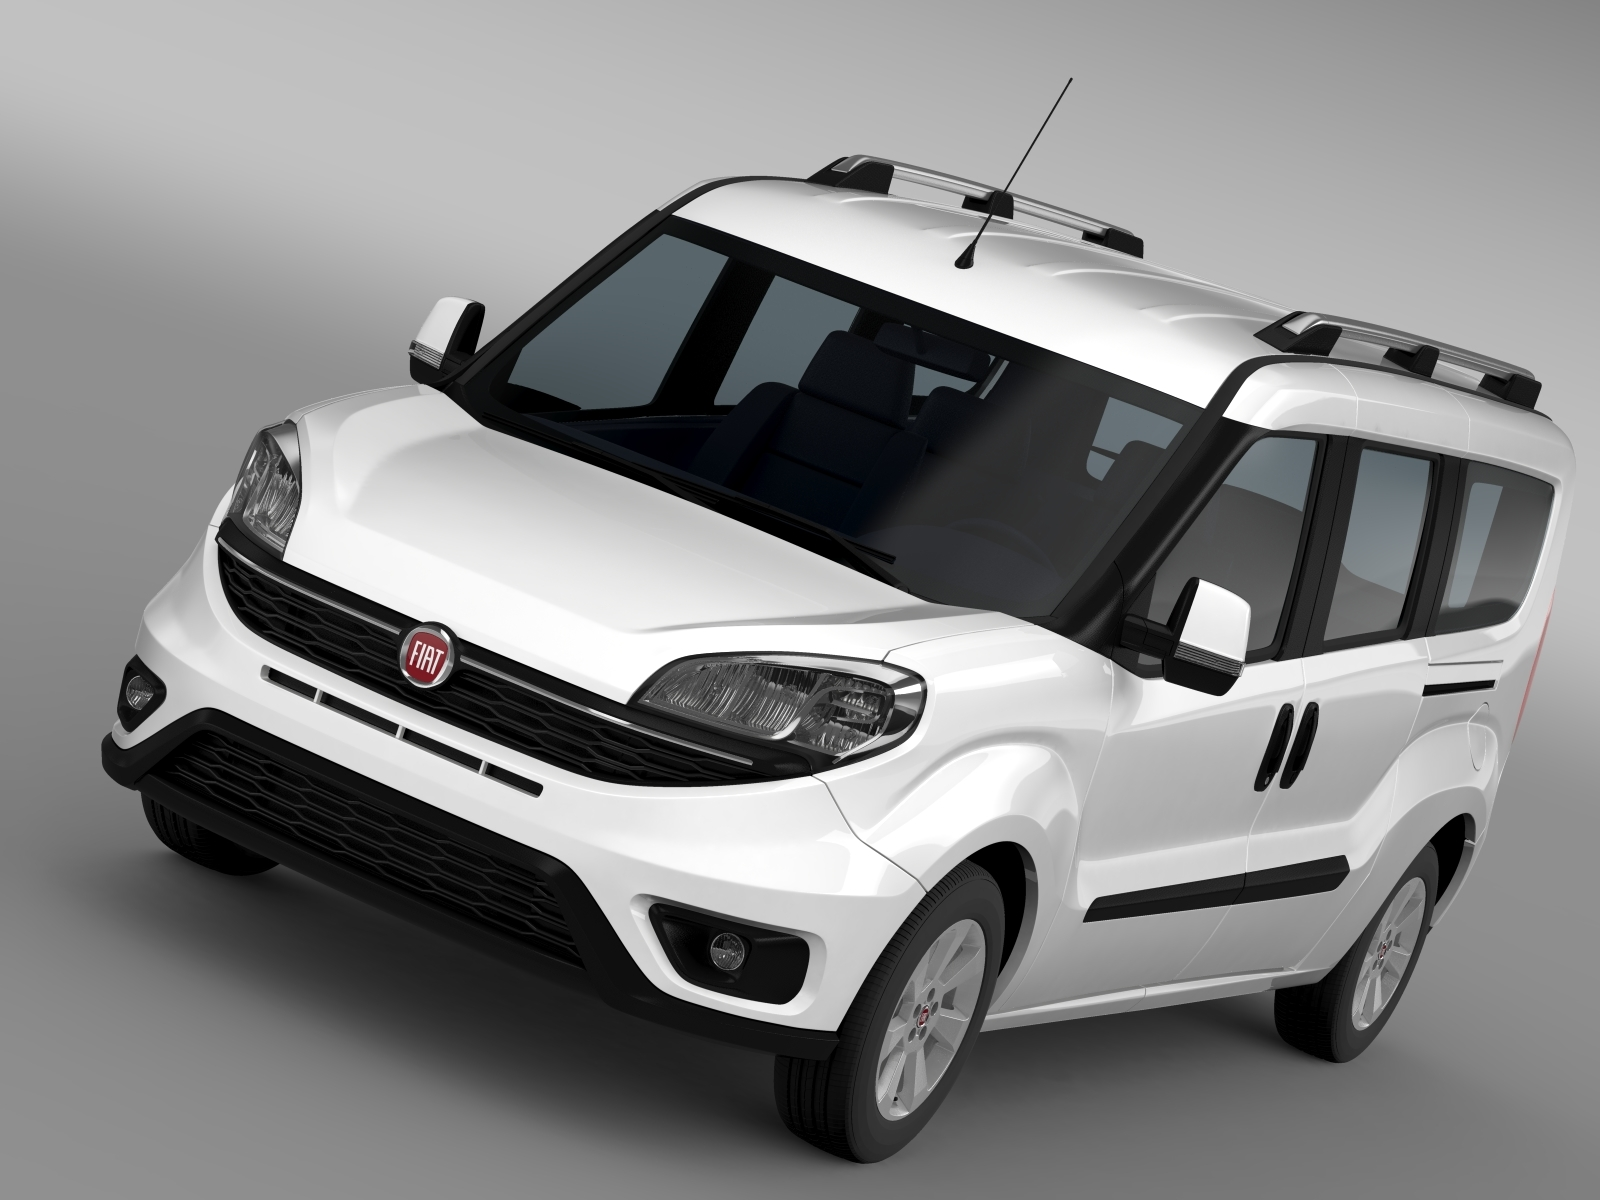 fiat doblo maxi 152 2015 by creator 3d 3docean. Black Bedroom Furniture Sets. Home Design Ideas